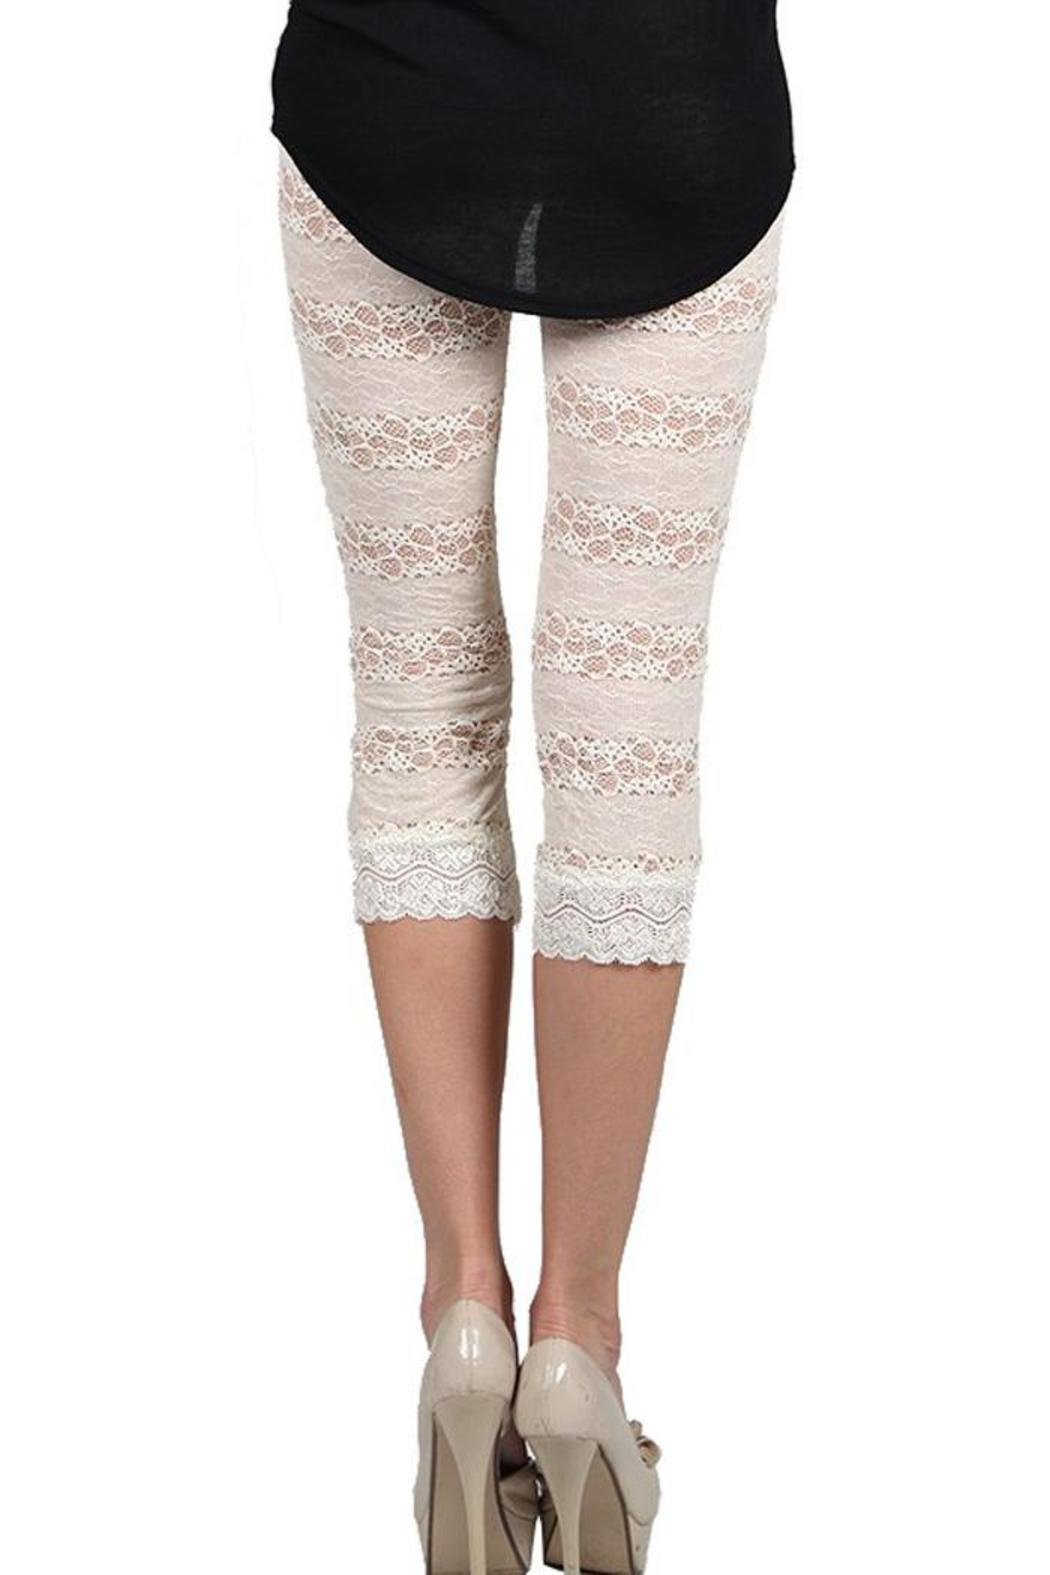 Lace Leggings Indiana Flirt Boutique